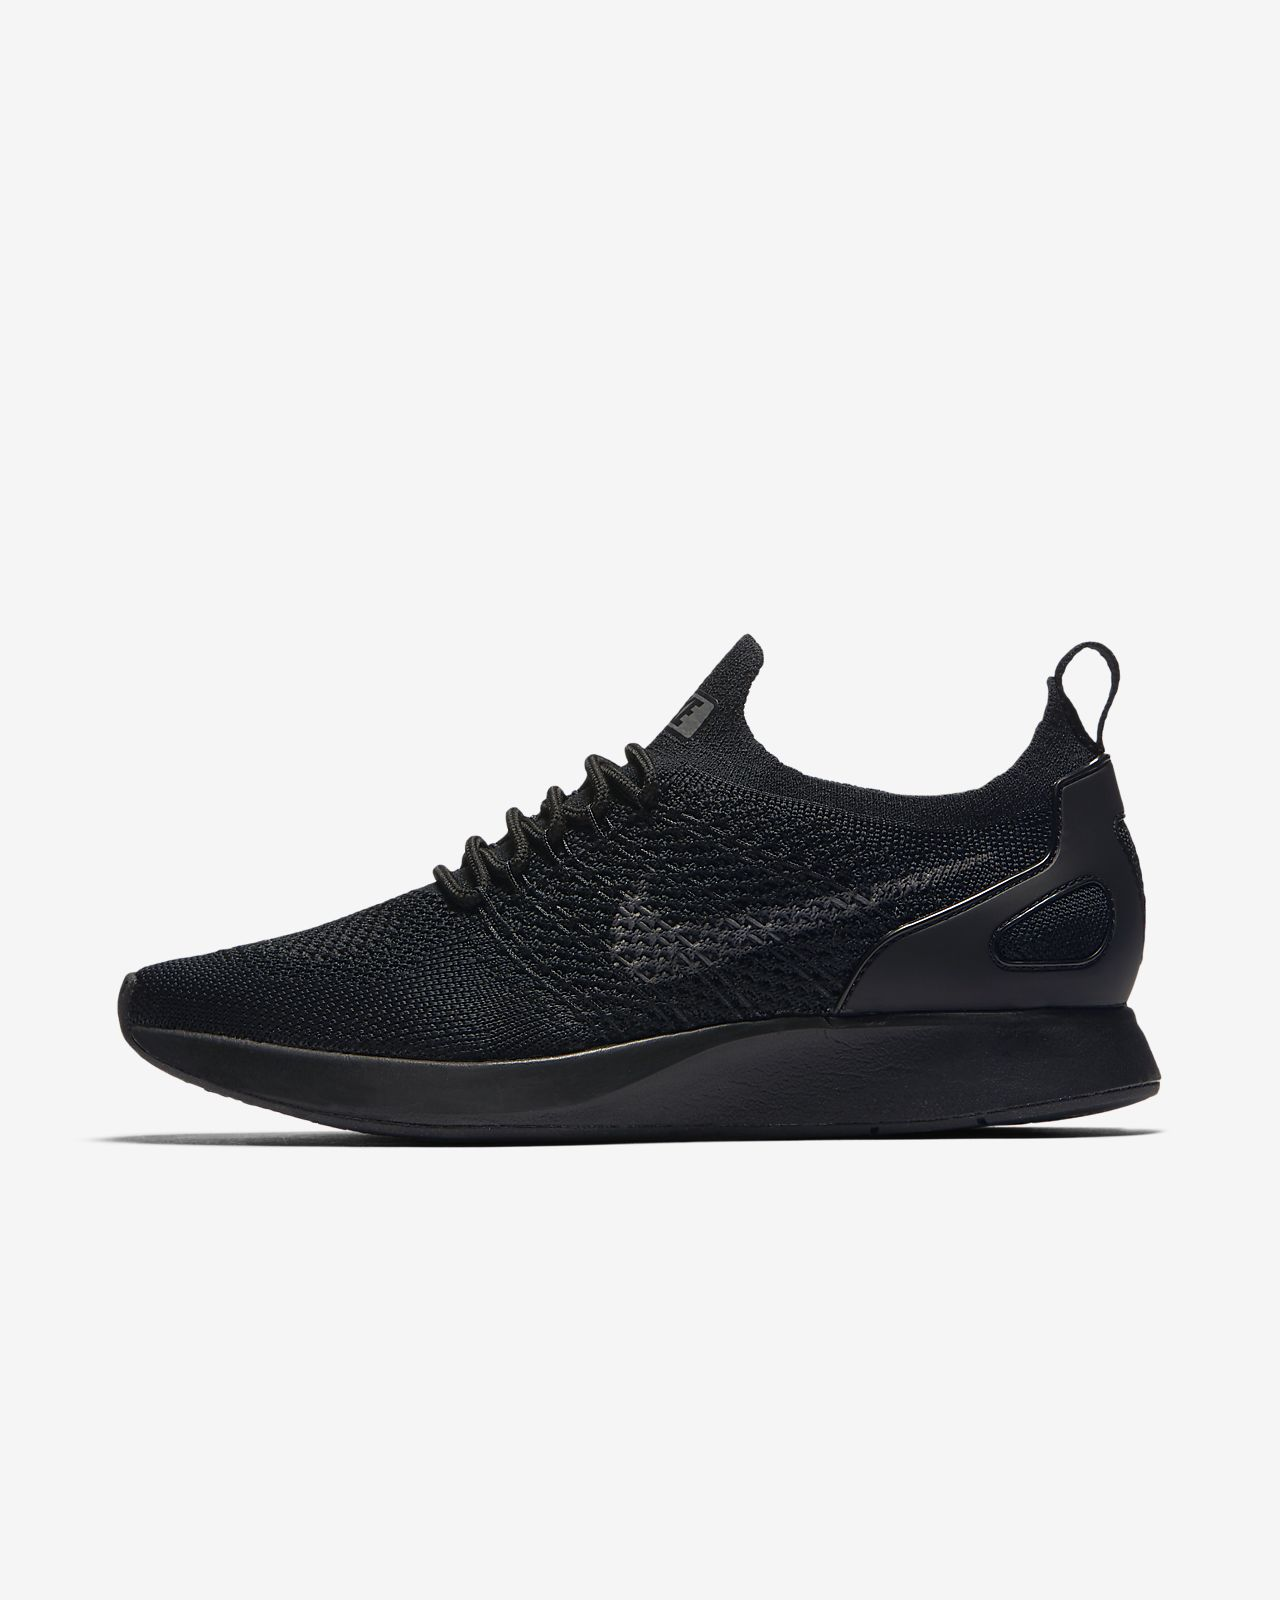 Nike Air Zoom Mariah Flyknit Racer Men's Lifestyle Shoes Black/Grey eP3515A